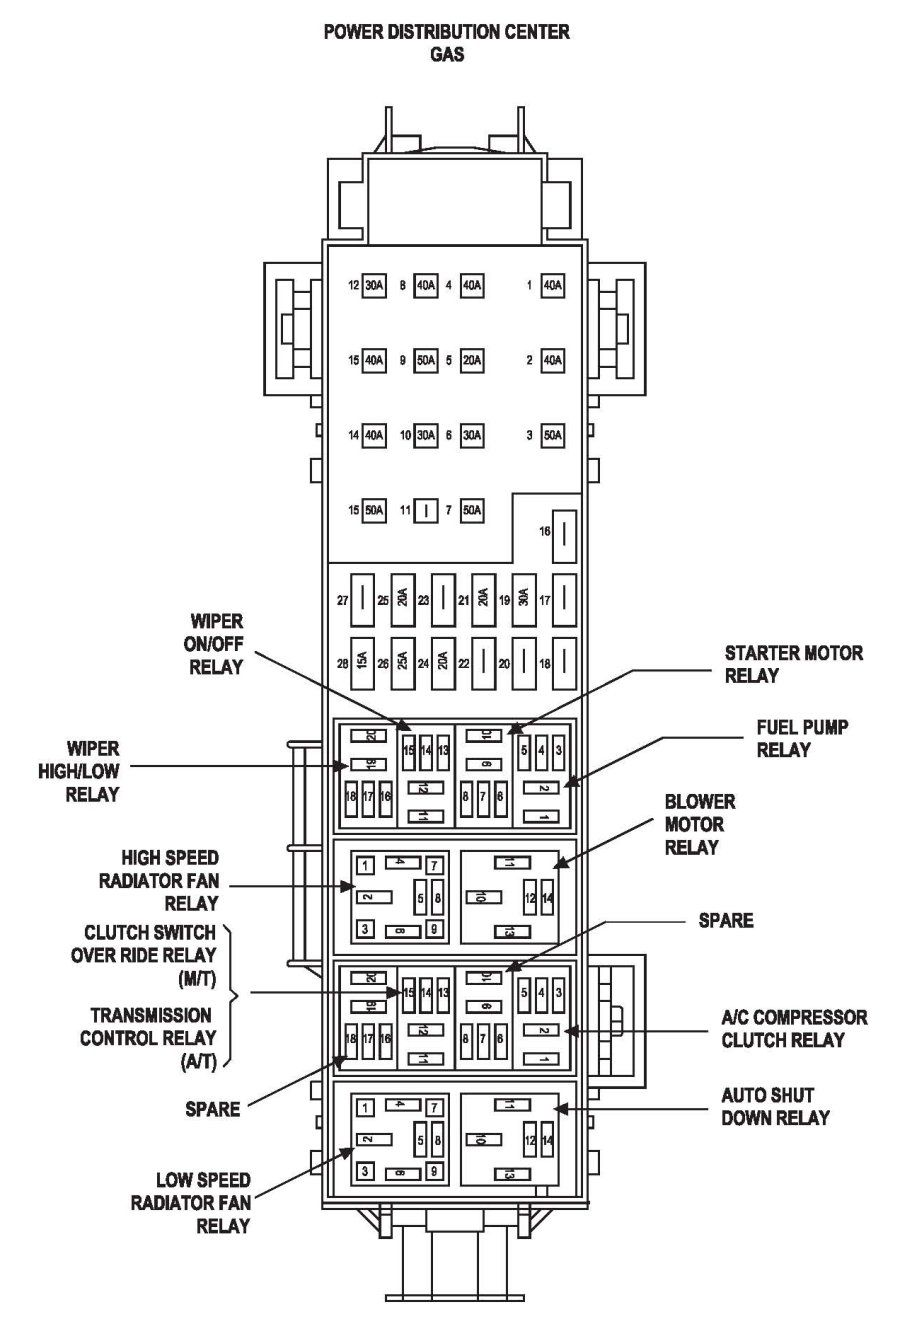 Jeep Liberty Fuse Box Diagram image details – Jeep Comp Fuse Panel Diagram